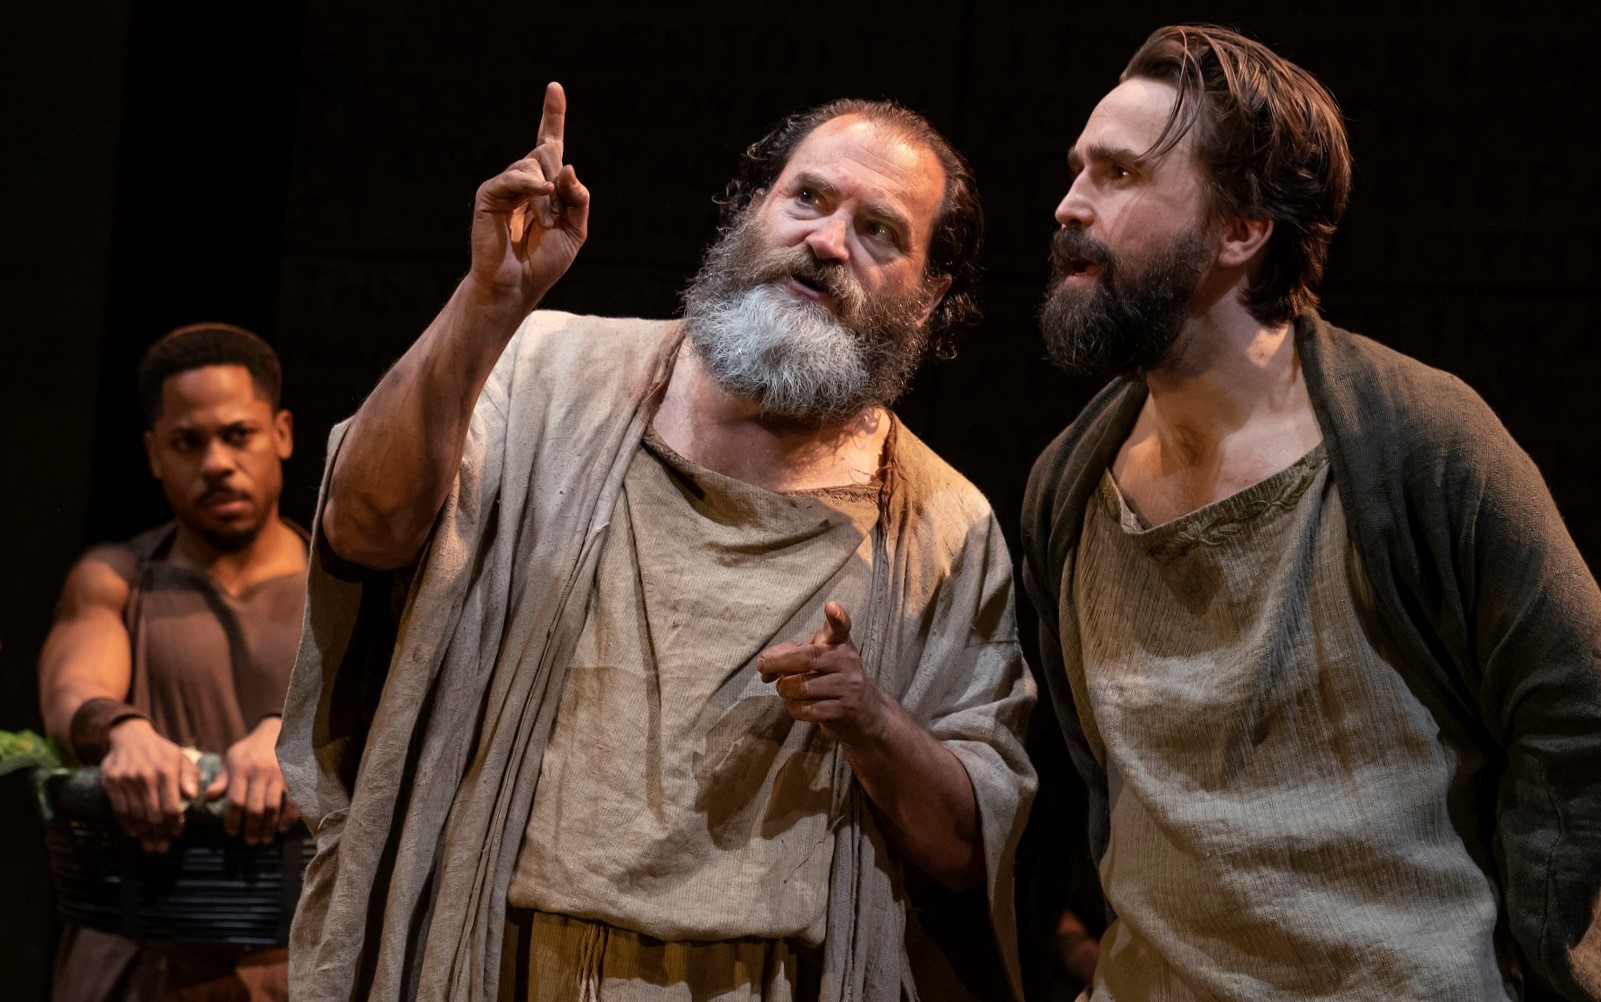 Michael Stuhlbarg (center) is Socrates and Joe Tapper (right) is Agathon, with Ro Boddie (left) looking on, in Tim Blake Nelson's Socrates. Top: Stuhlbarg with Robert Joy.